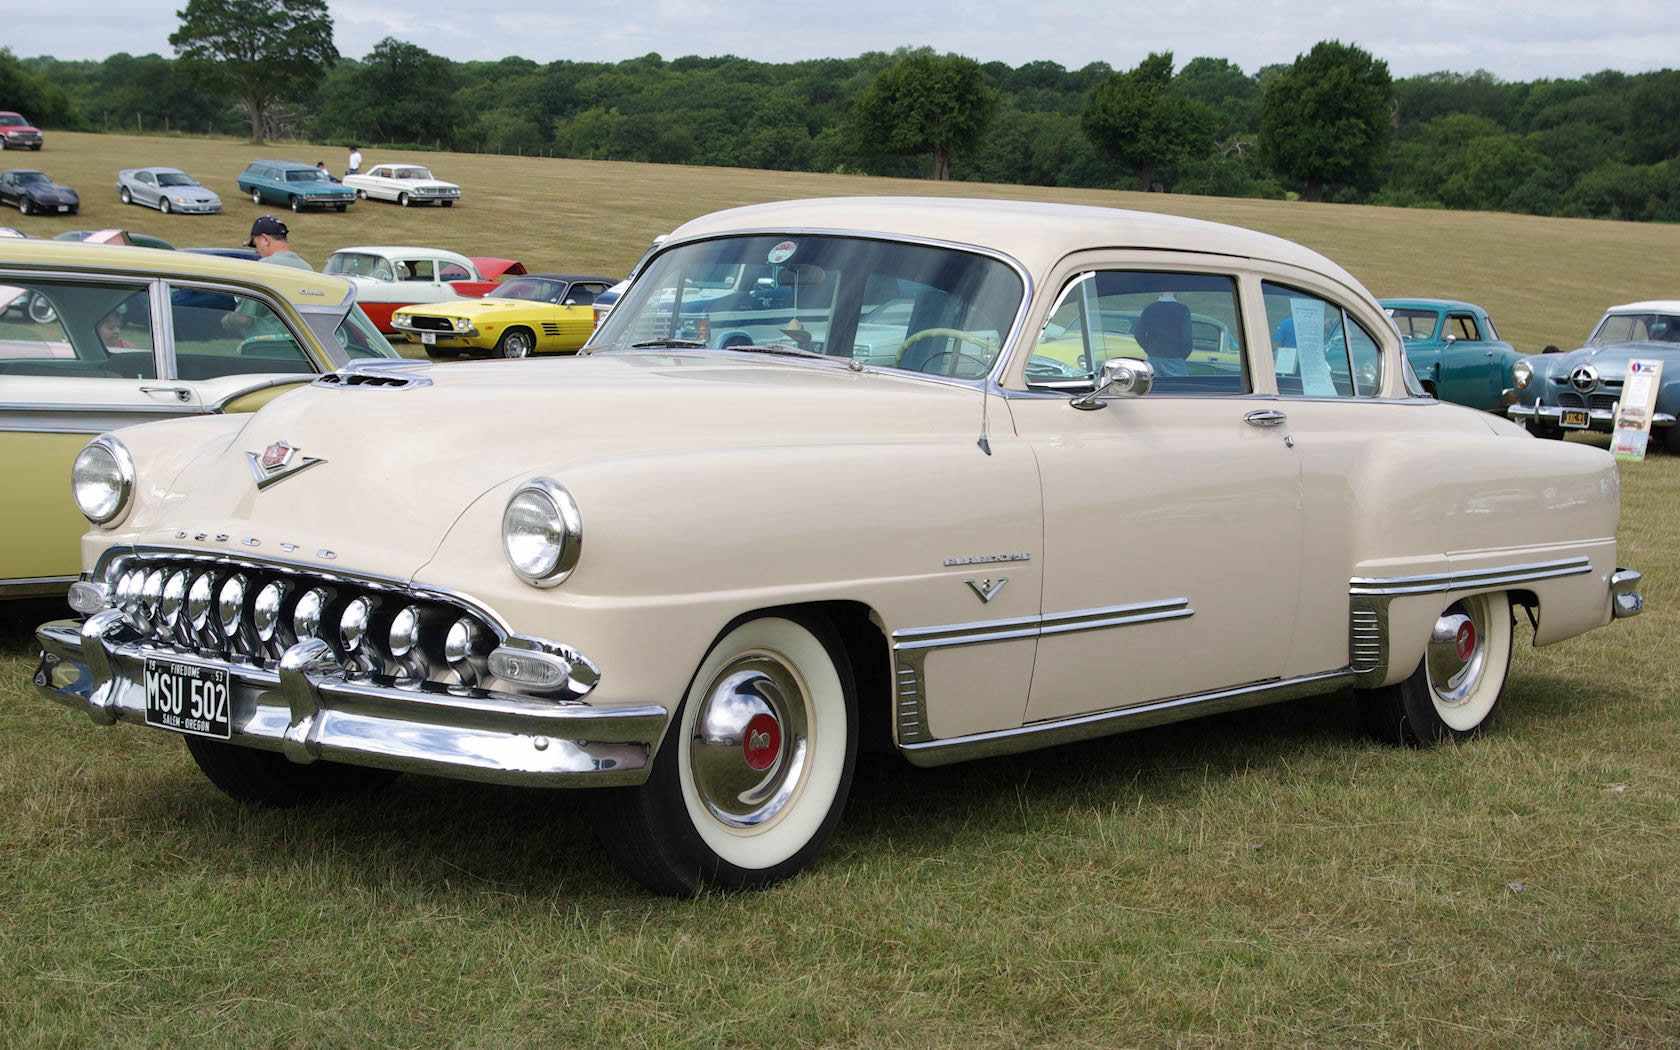 1957 desoto fireflite for sale - 1952 Desoto Deluxe Related Keywords Amp Suggestions 1952 Desoto Deluxe